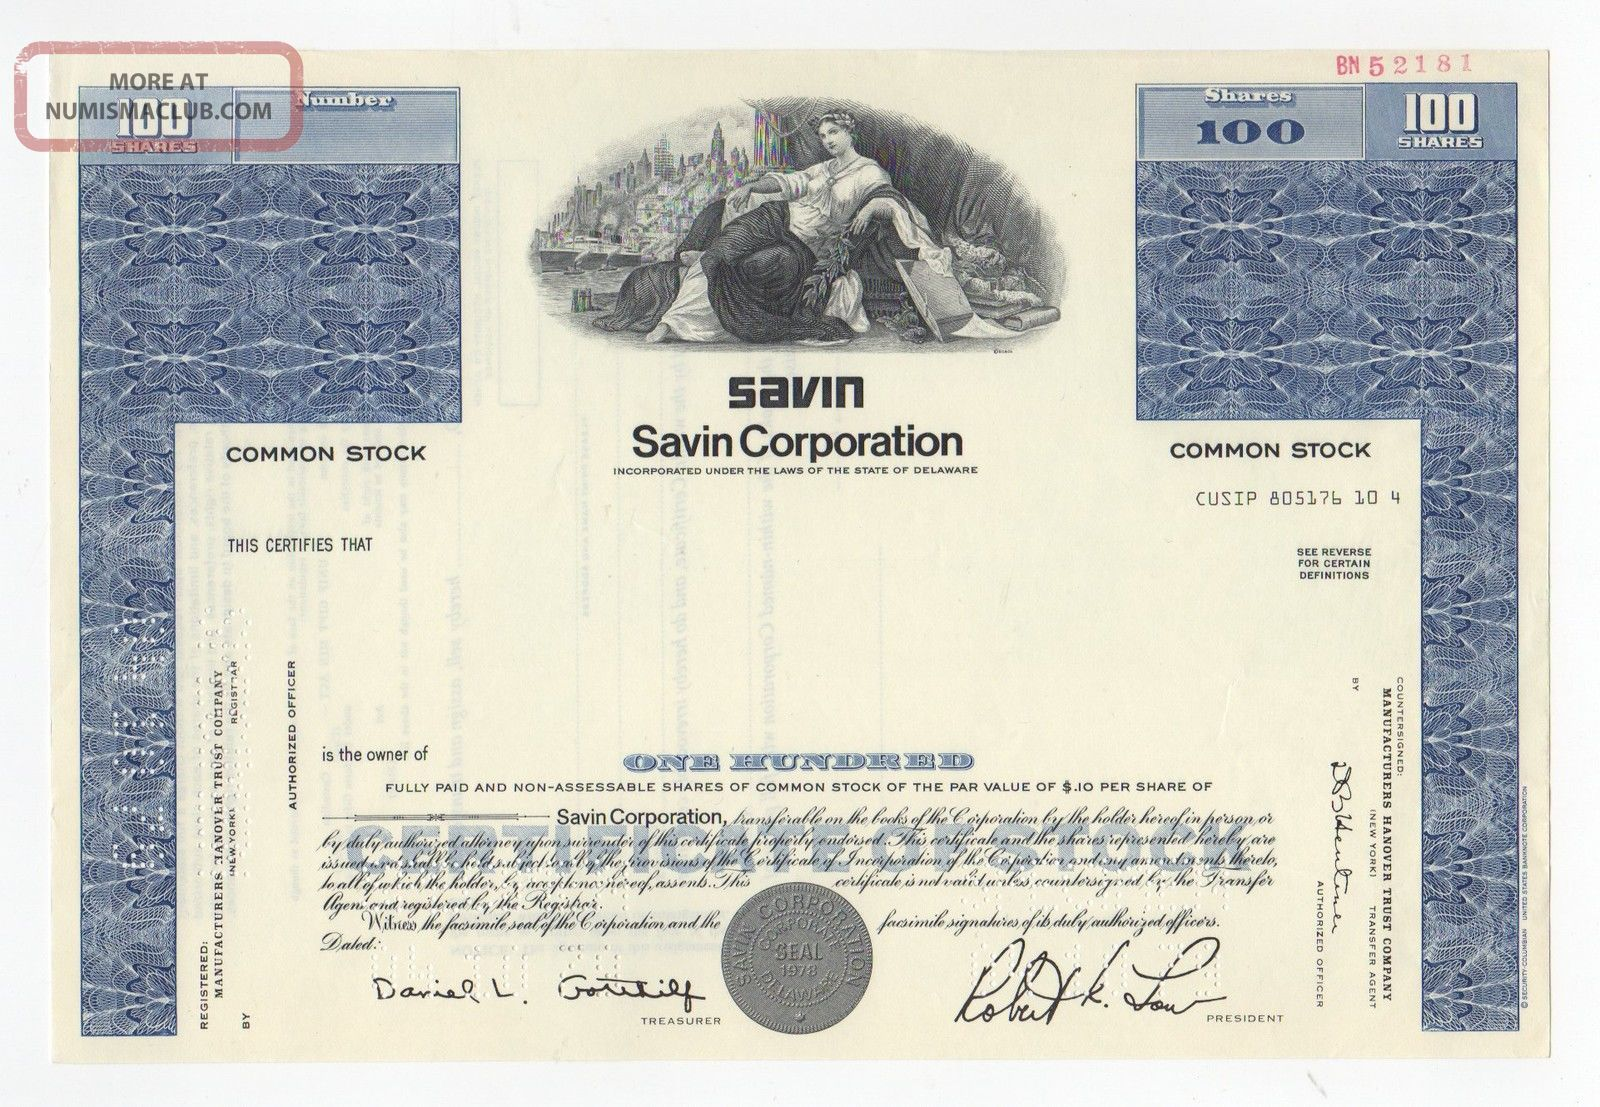 Specimen - Savin Corporation Stock Certificate Stocks & Bonds, Scripophily photo